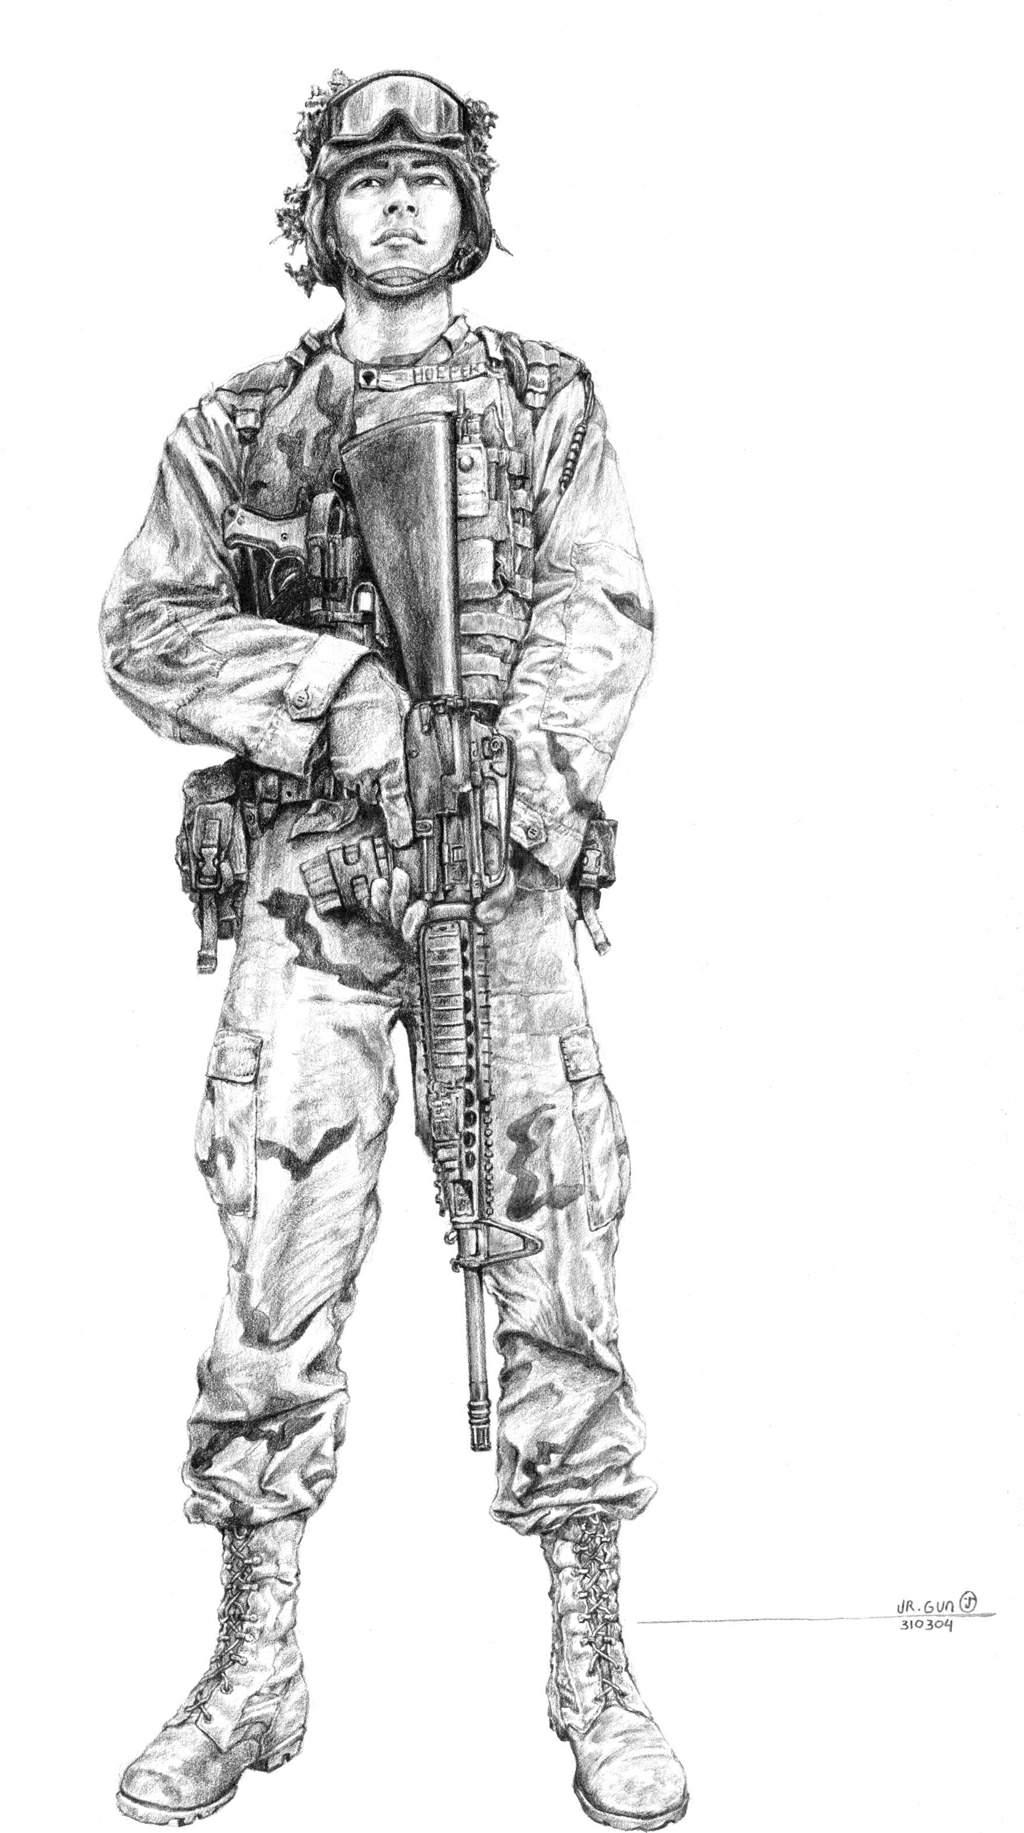 U.S. Army Soldier by hermes52 on DeviantArt